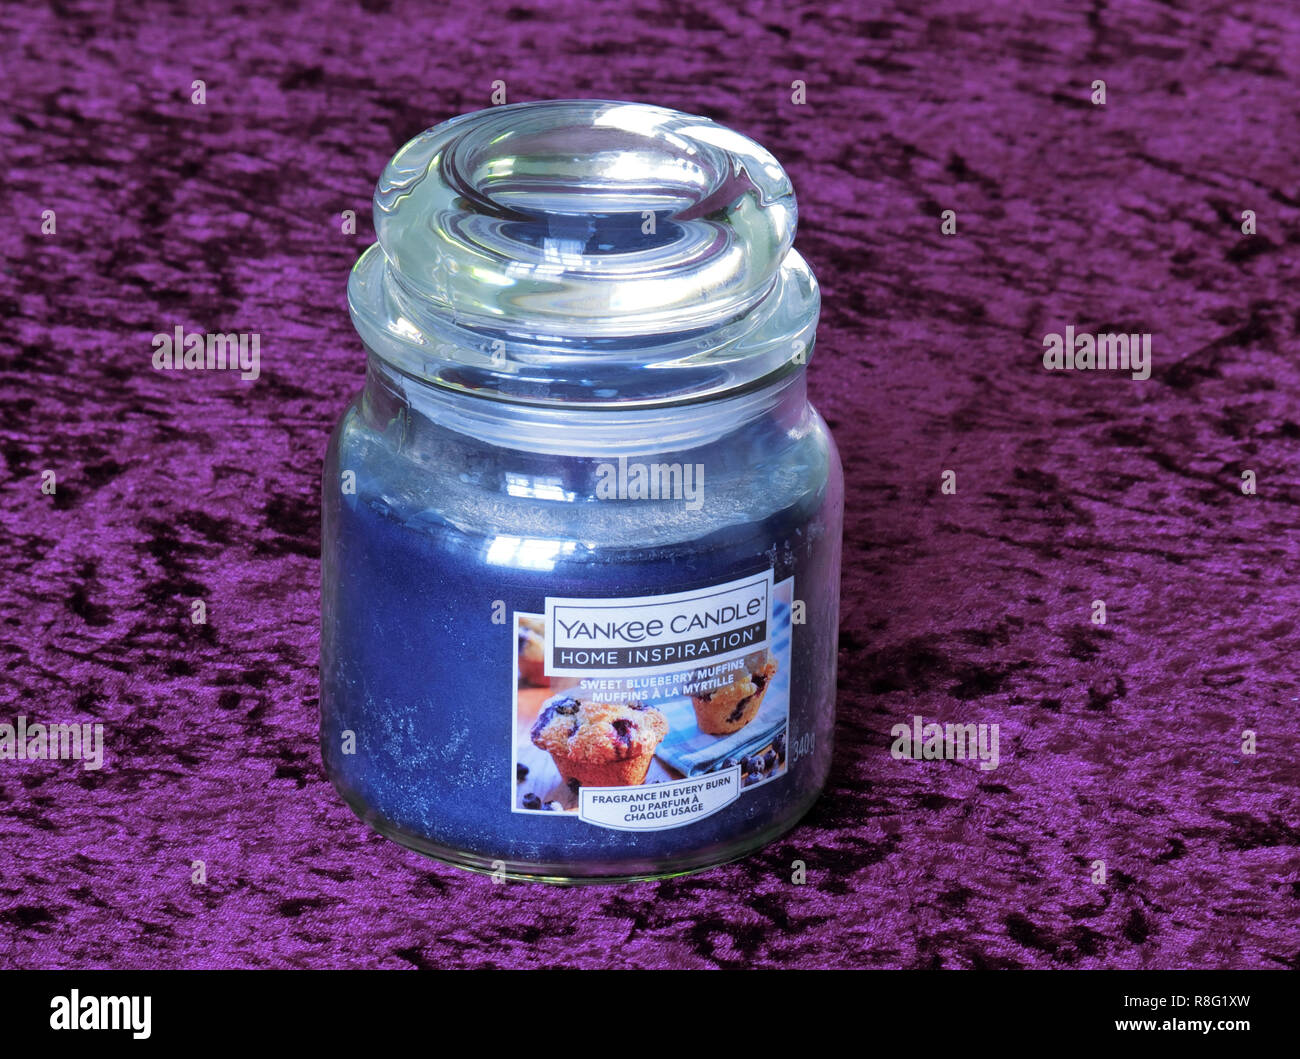 Yankee Candle Home Inspiration Fragranced, Scented or Perfumed Sweet Blueberry Muffins Candle - Stock Image